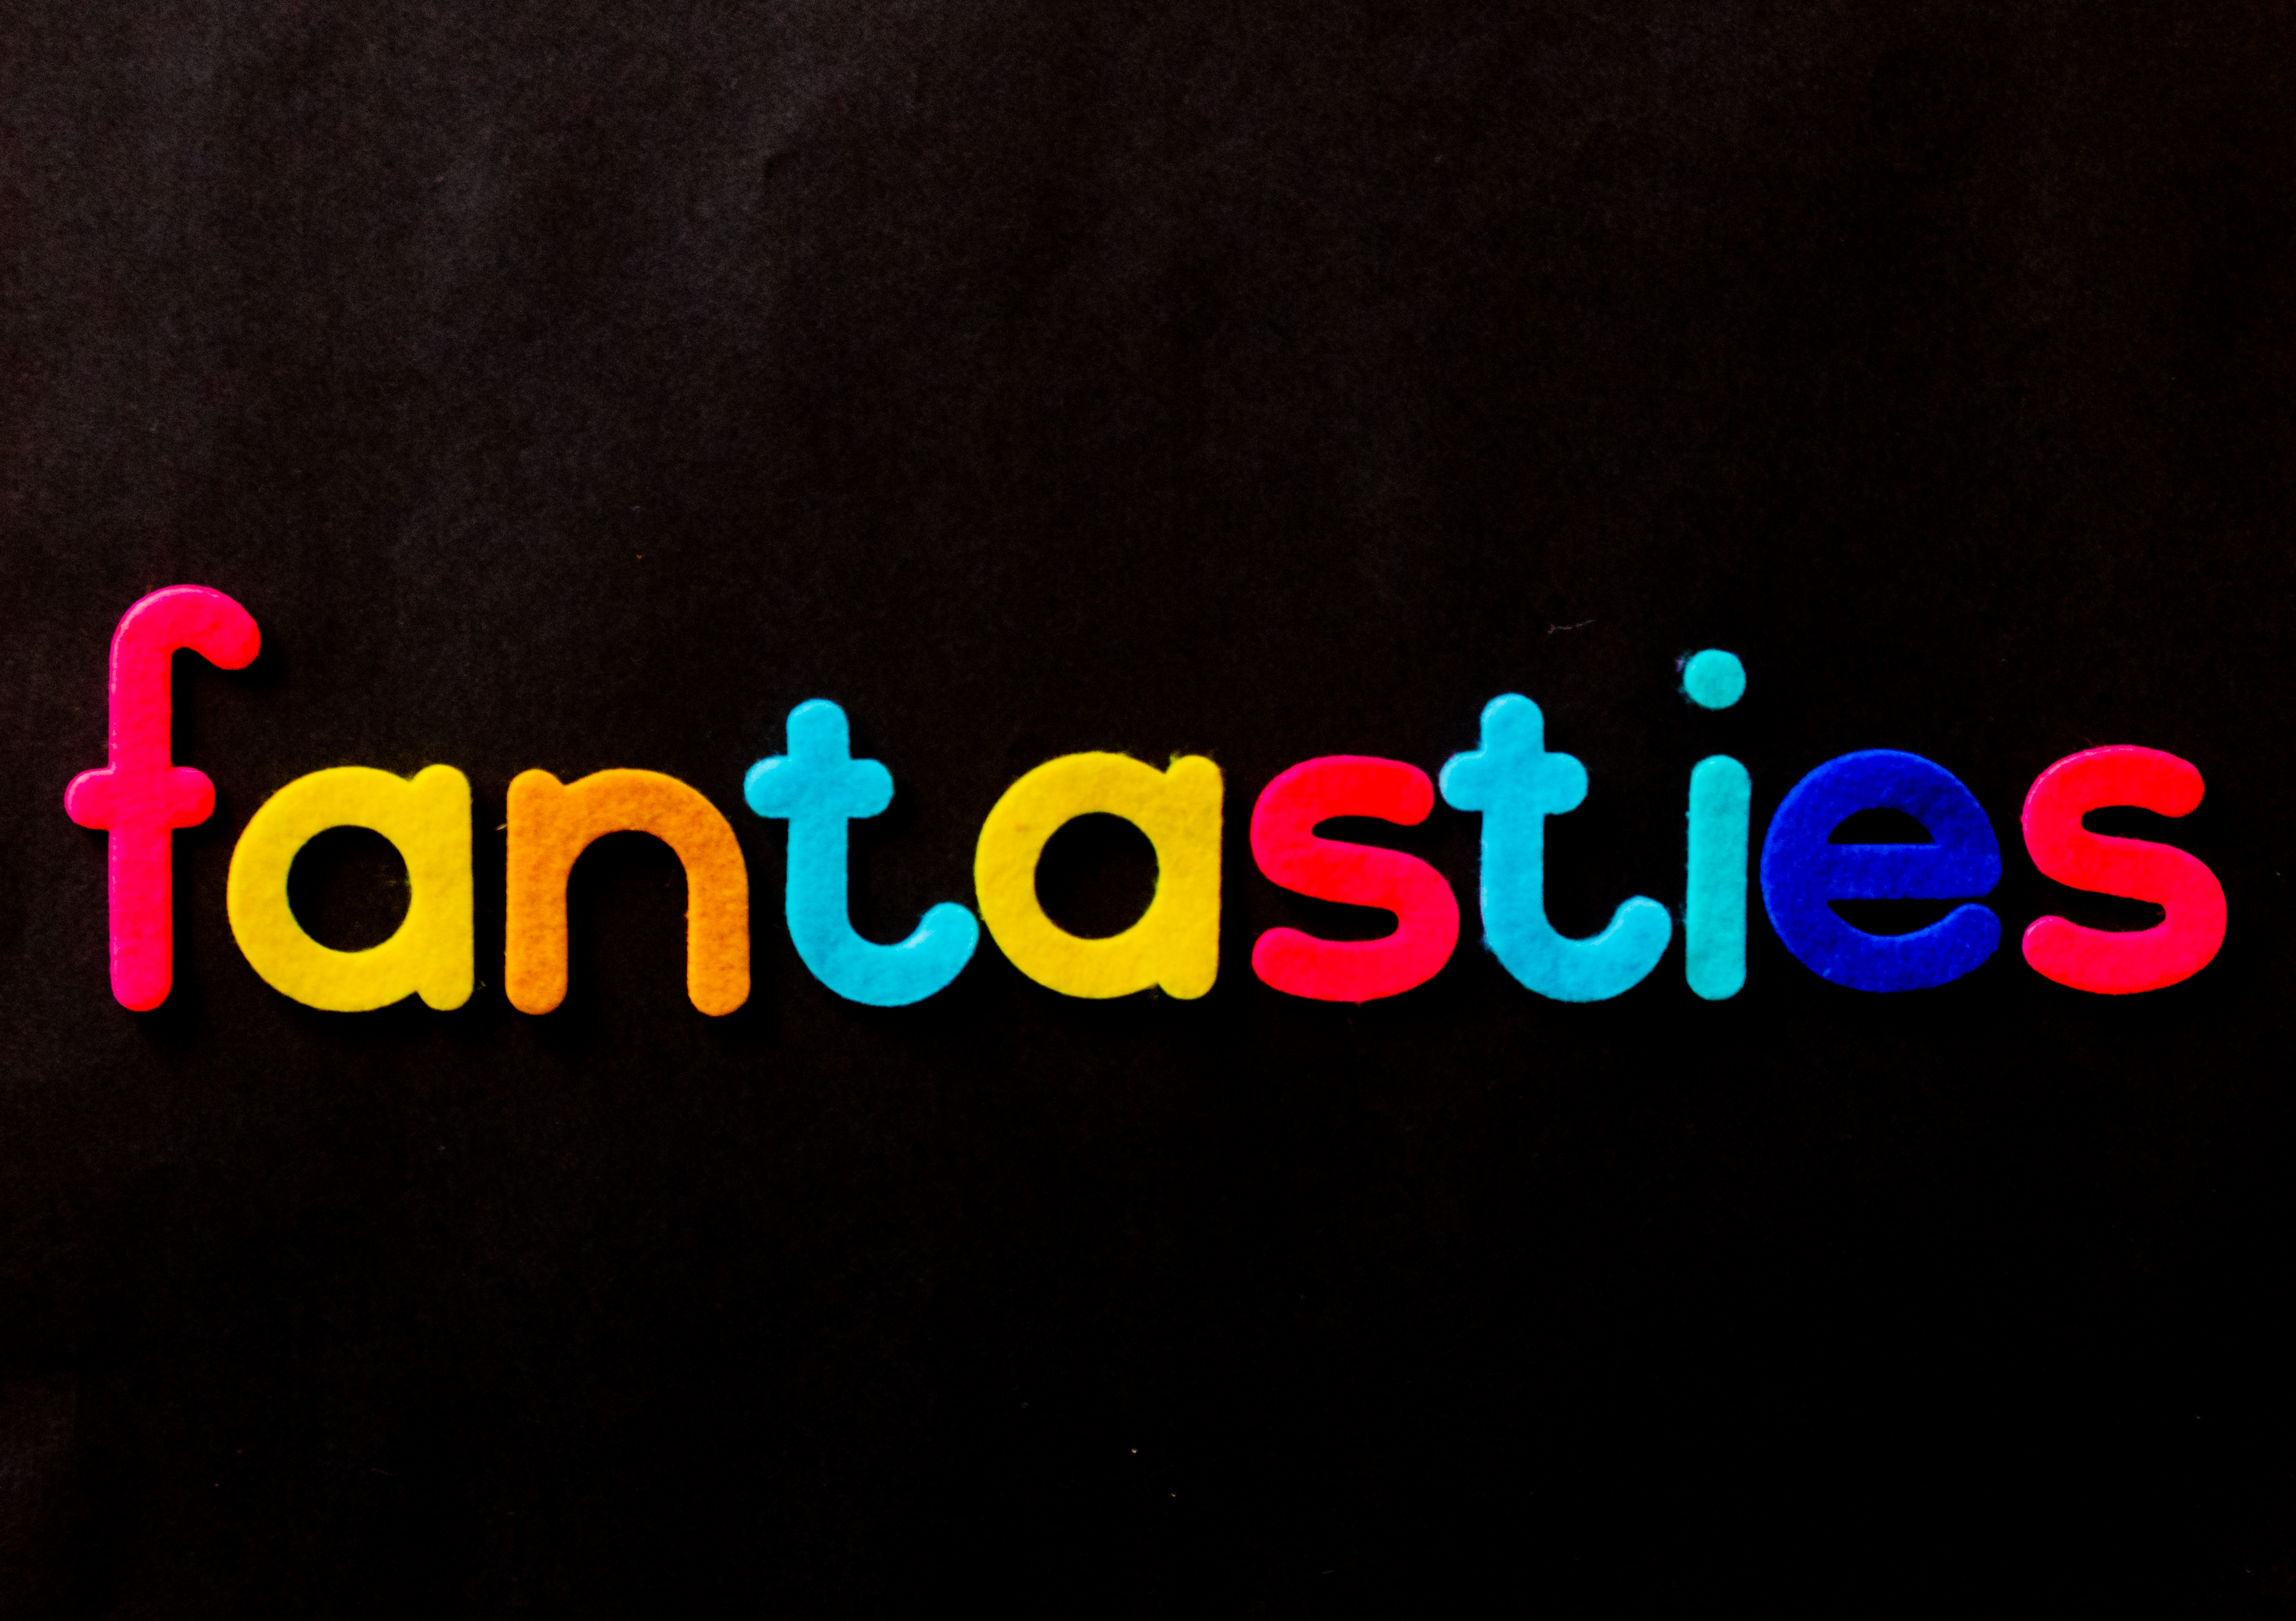 Black Background With Fantasties Text Overlay